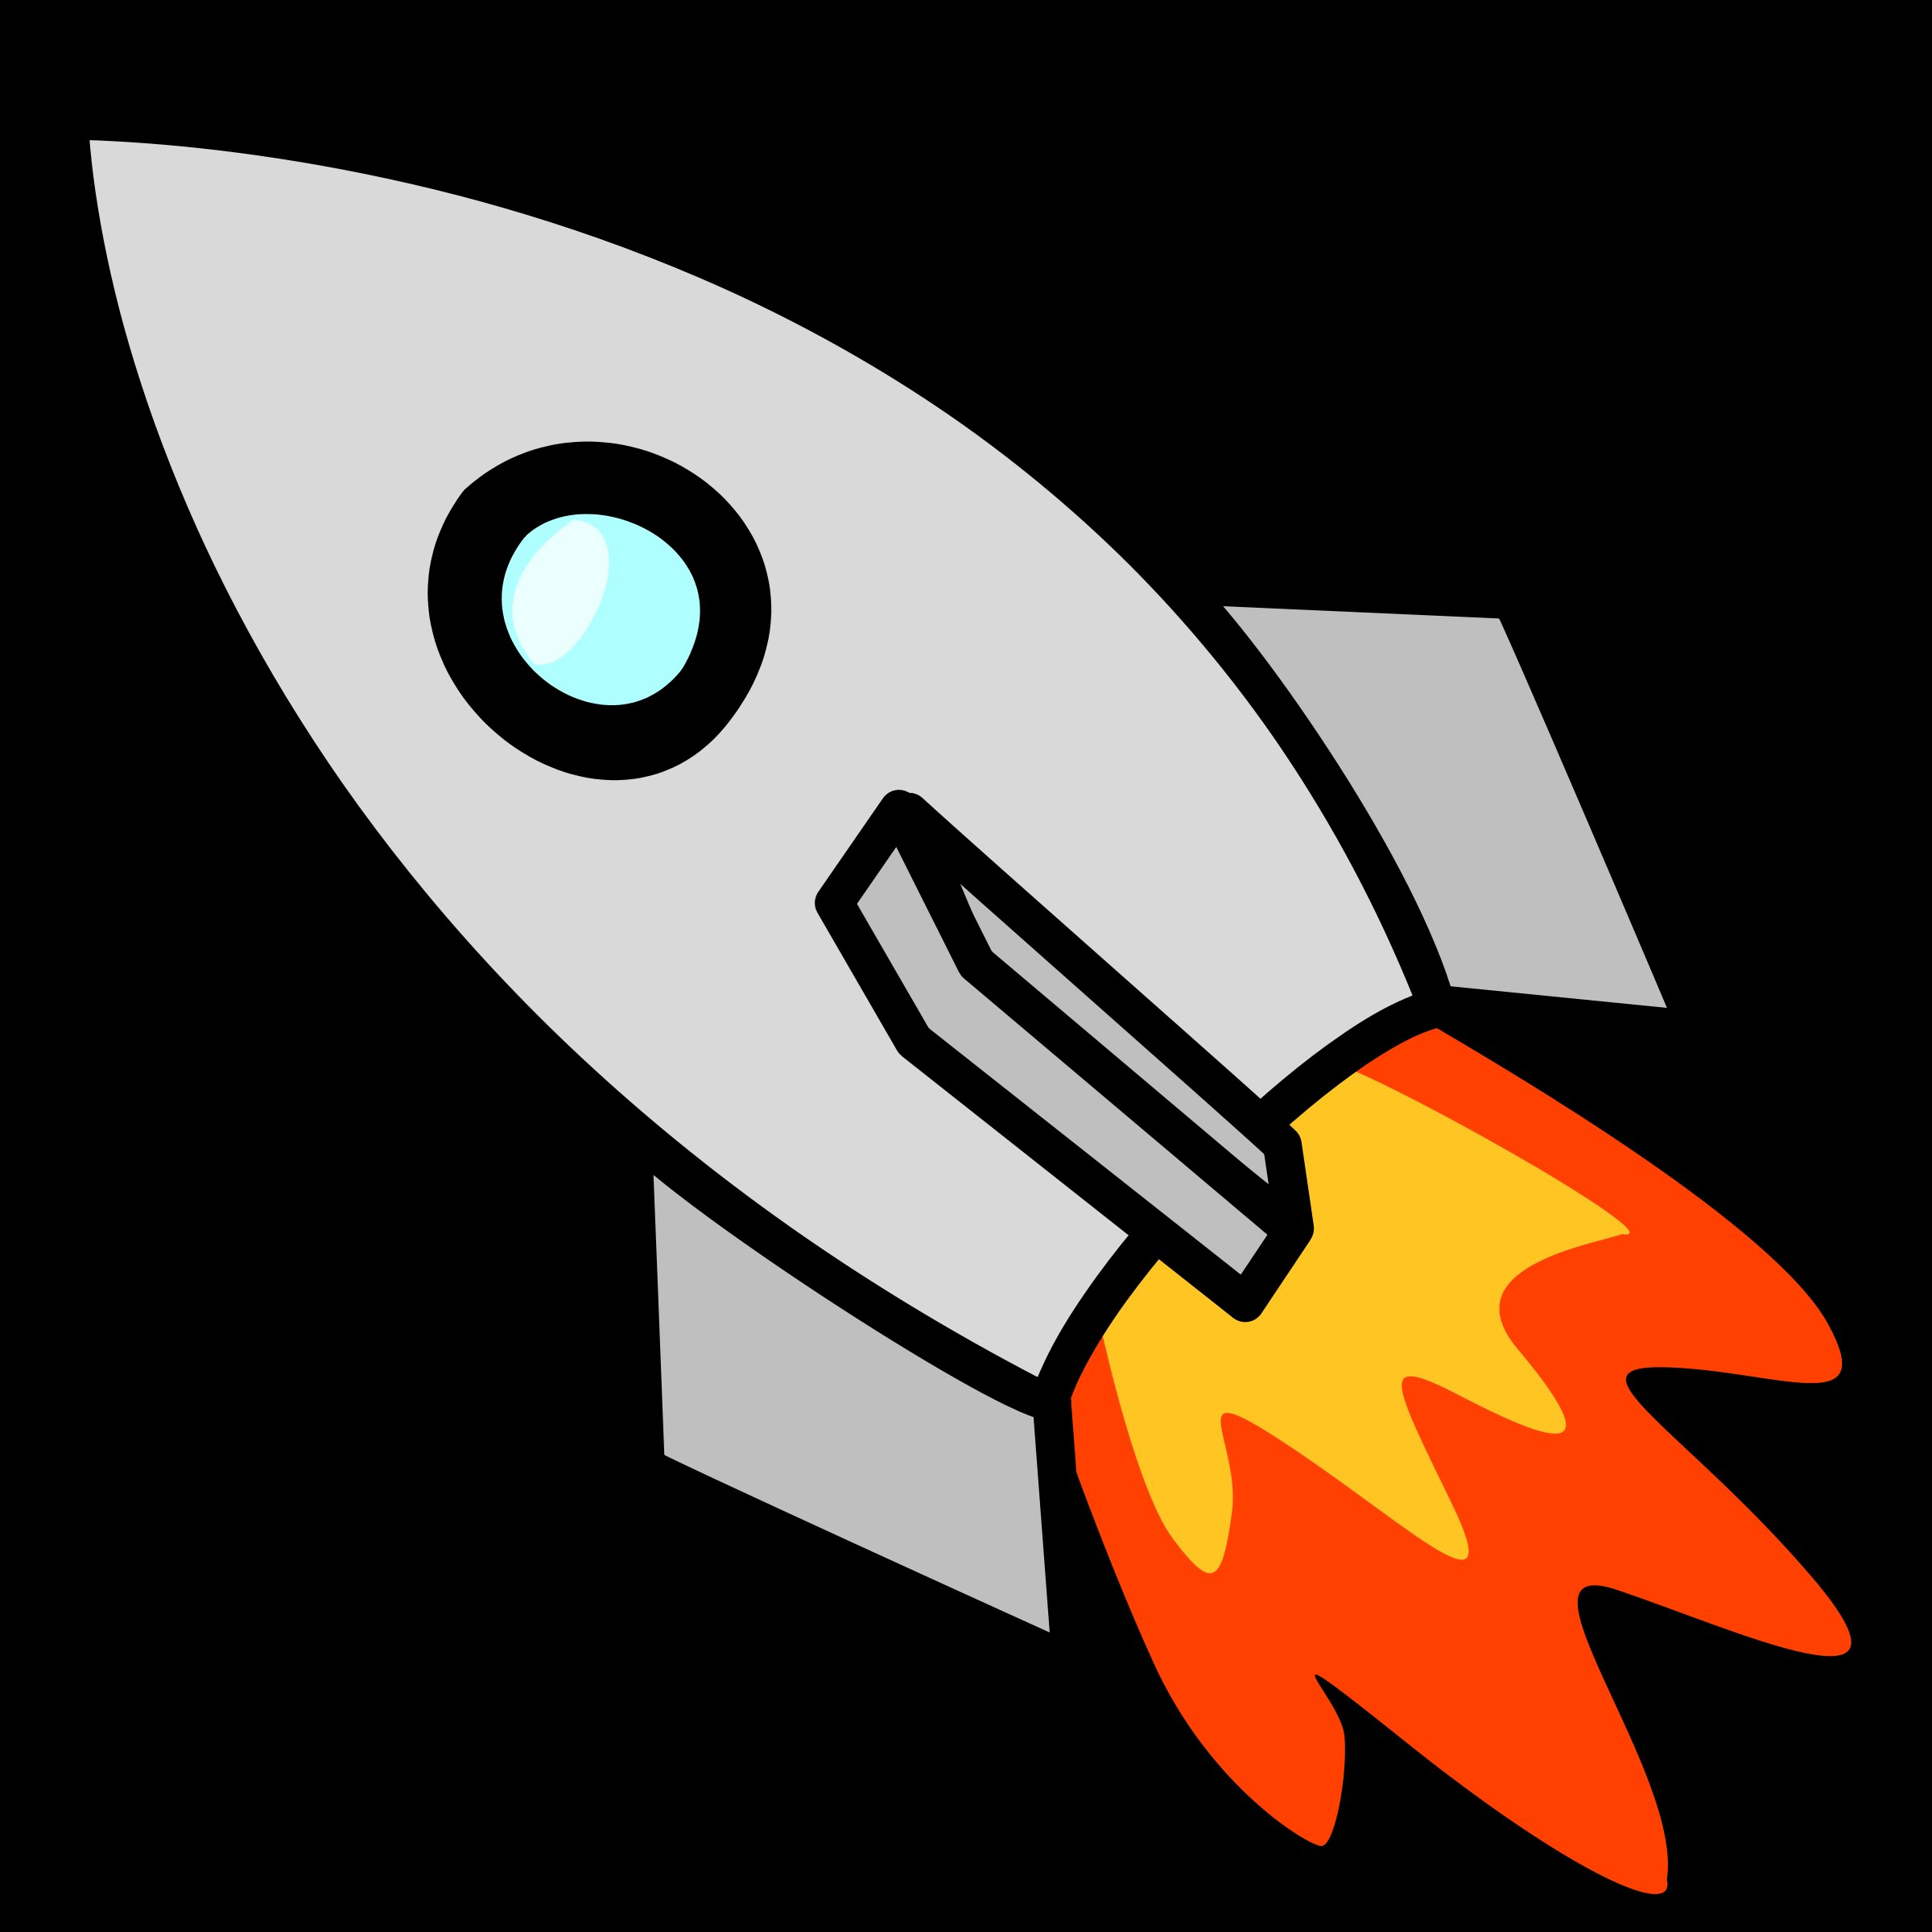 Rocket clipart with background.